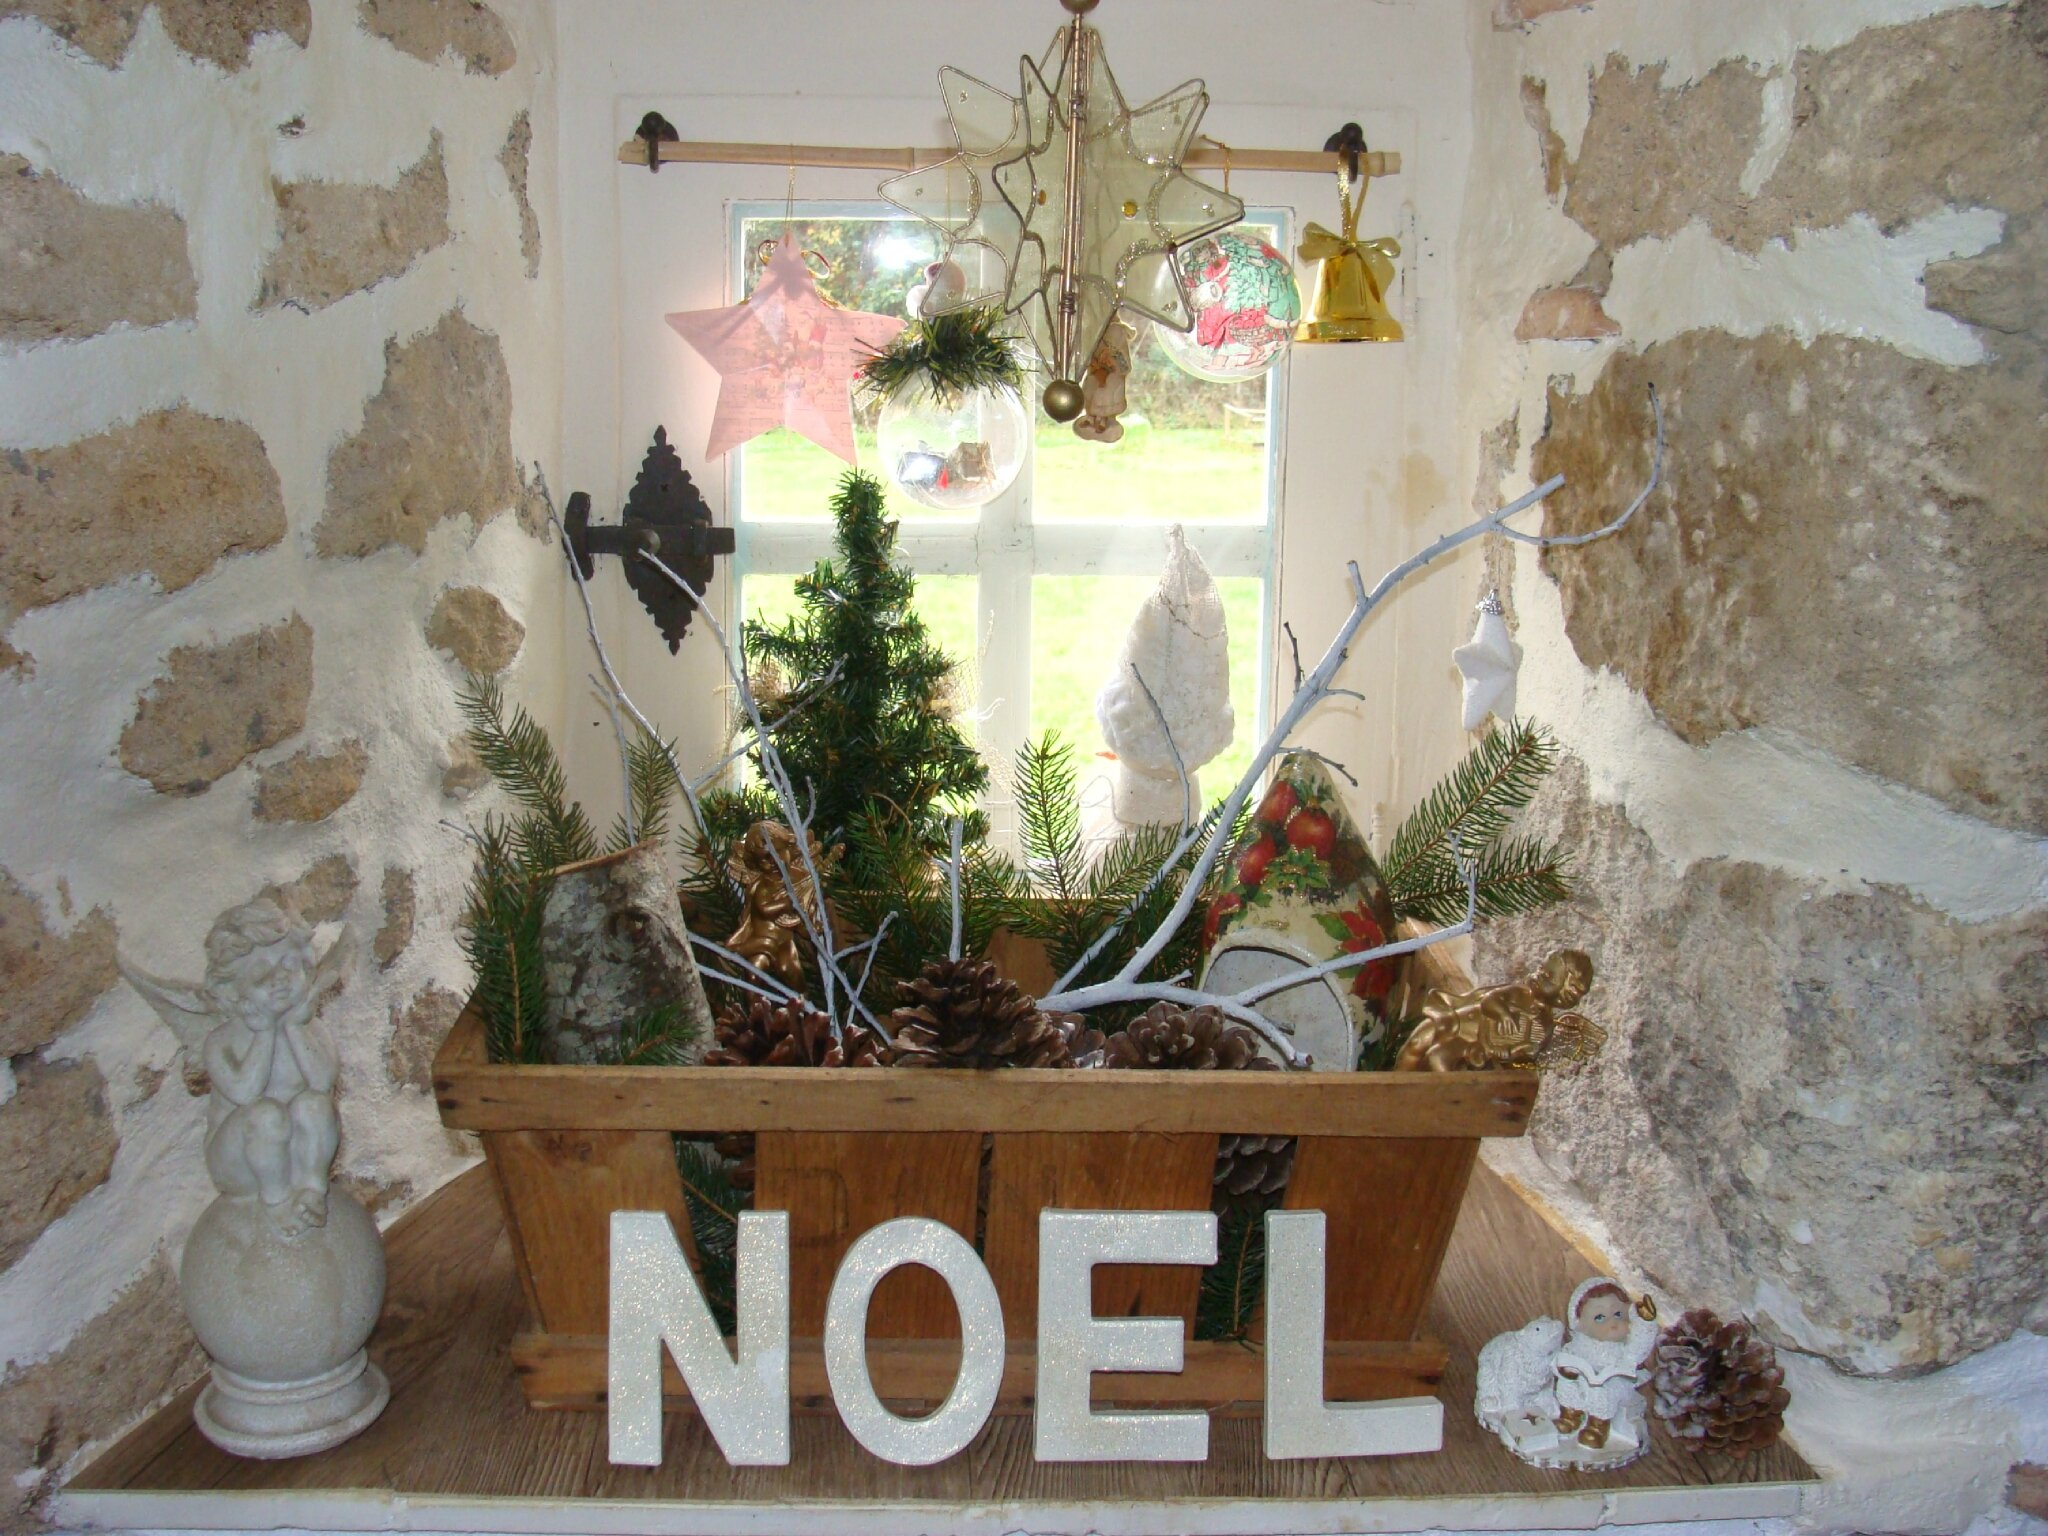 Decoration de noel interieur d coration du sapin de no l for Decoration noel interieur